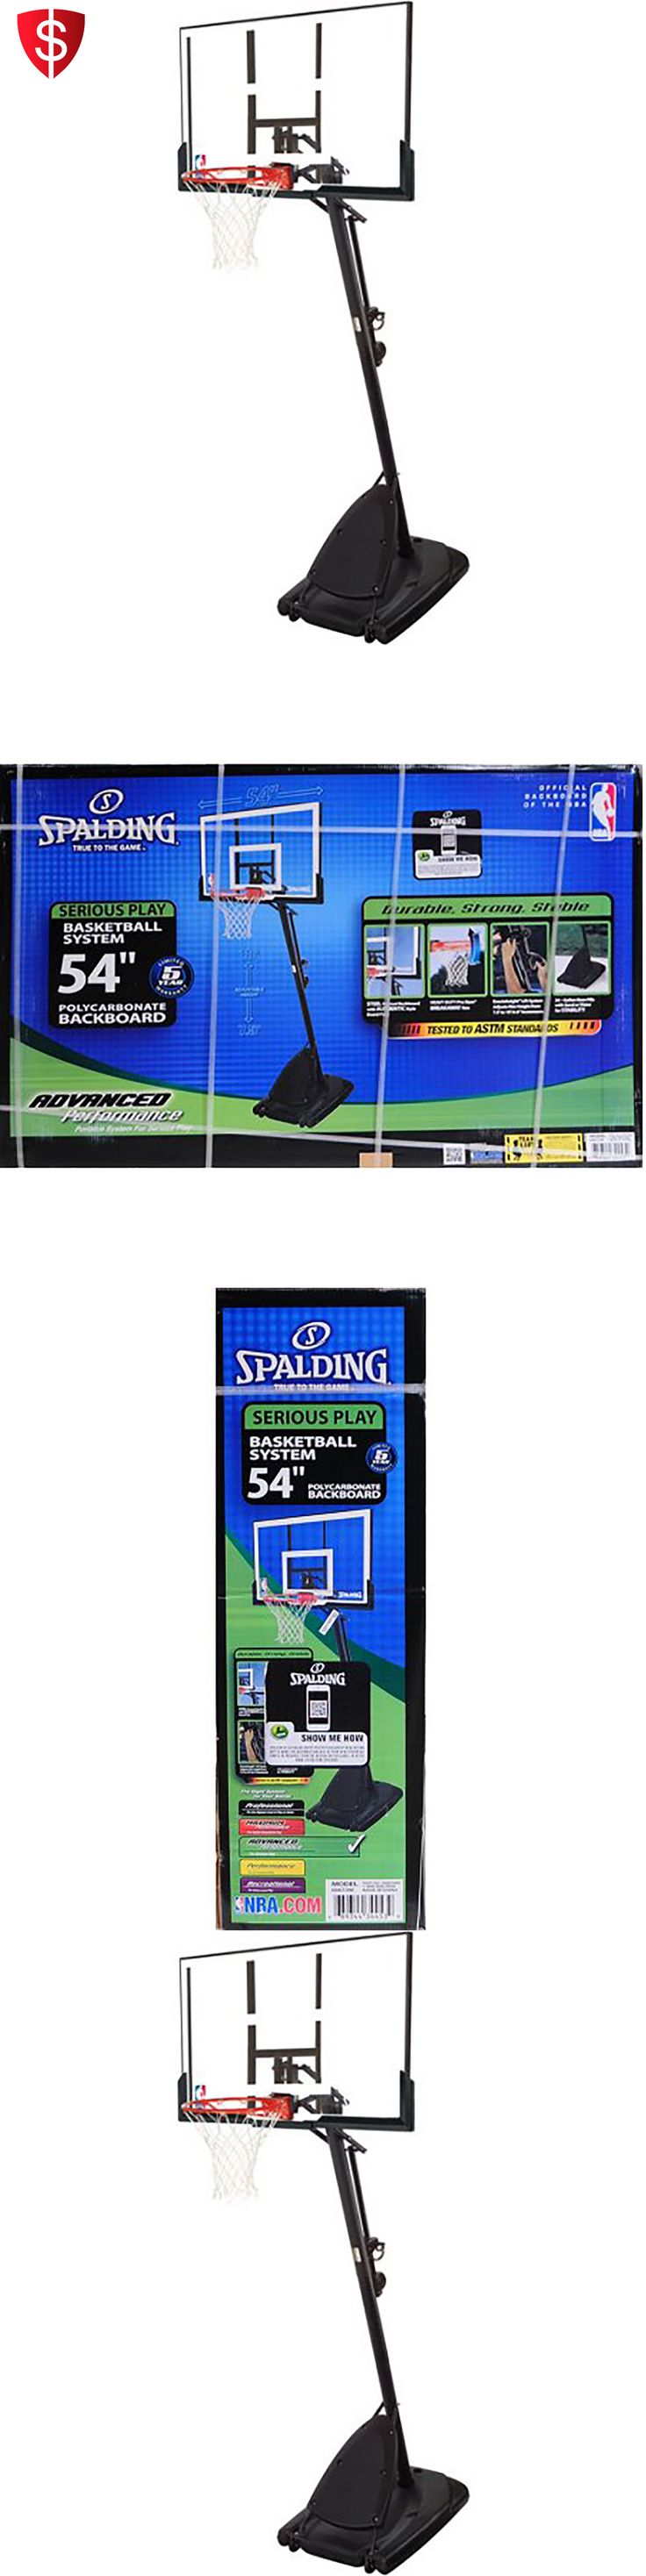 Backboard Systems 21196: Basketball Backboard 54 Portable Clear Net Goal Adjustable Hoop Outdoor Play -> BUY IT NOW ONLY: $232.96 on eBay!